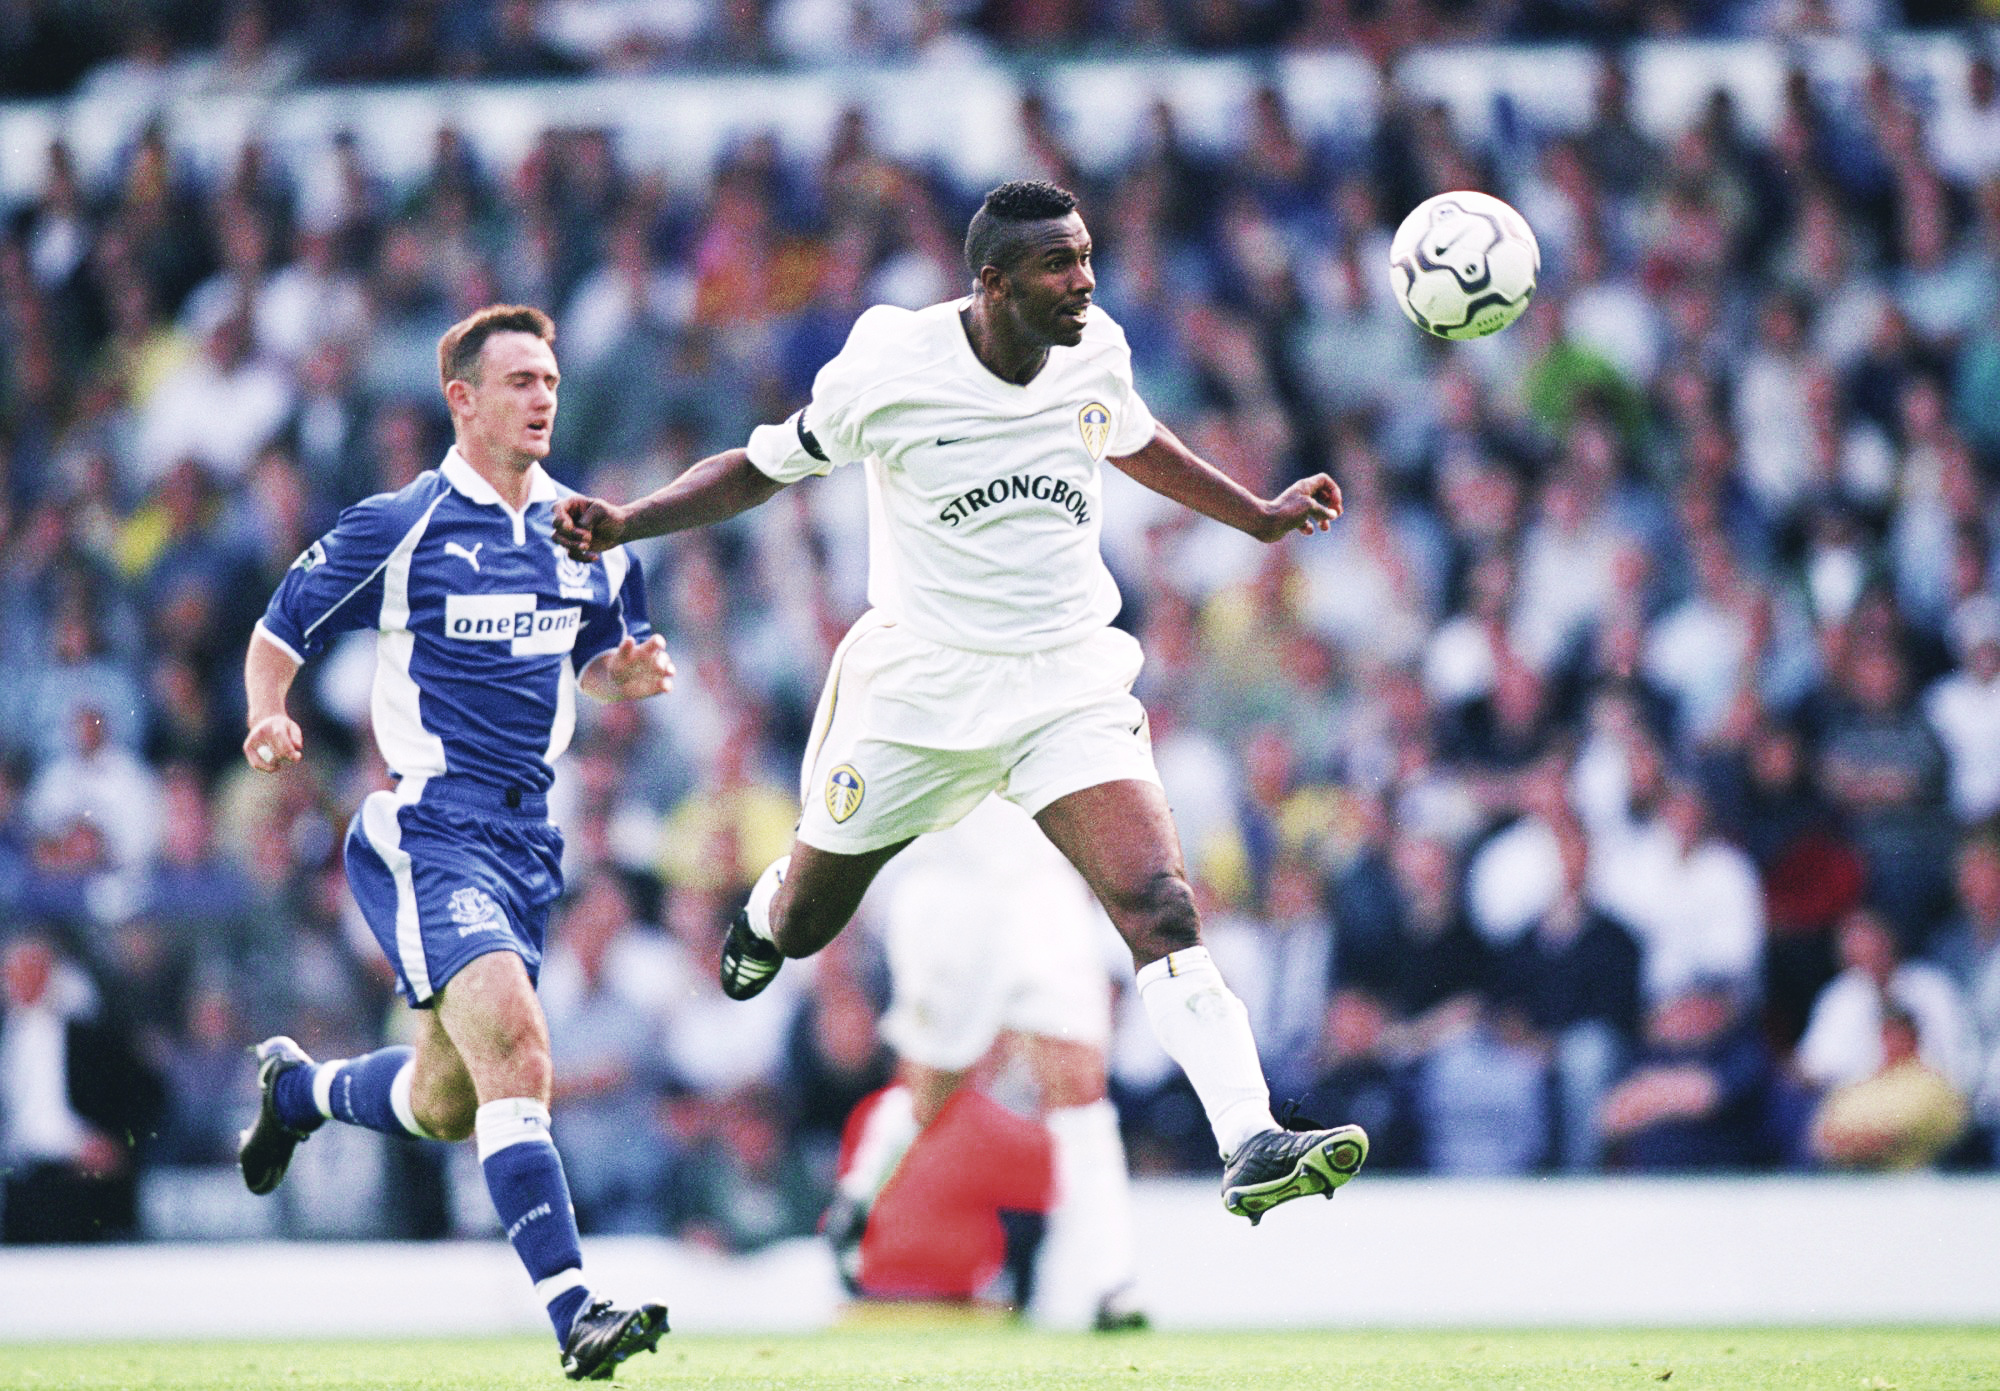 Read Lucas Radebe From Being Shot In South Africa To National Icon And Leeds Legend